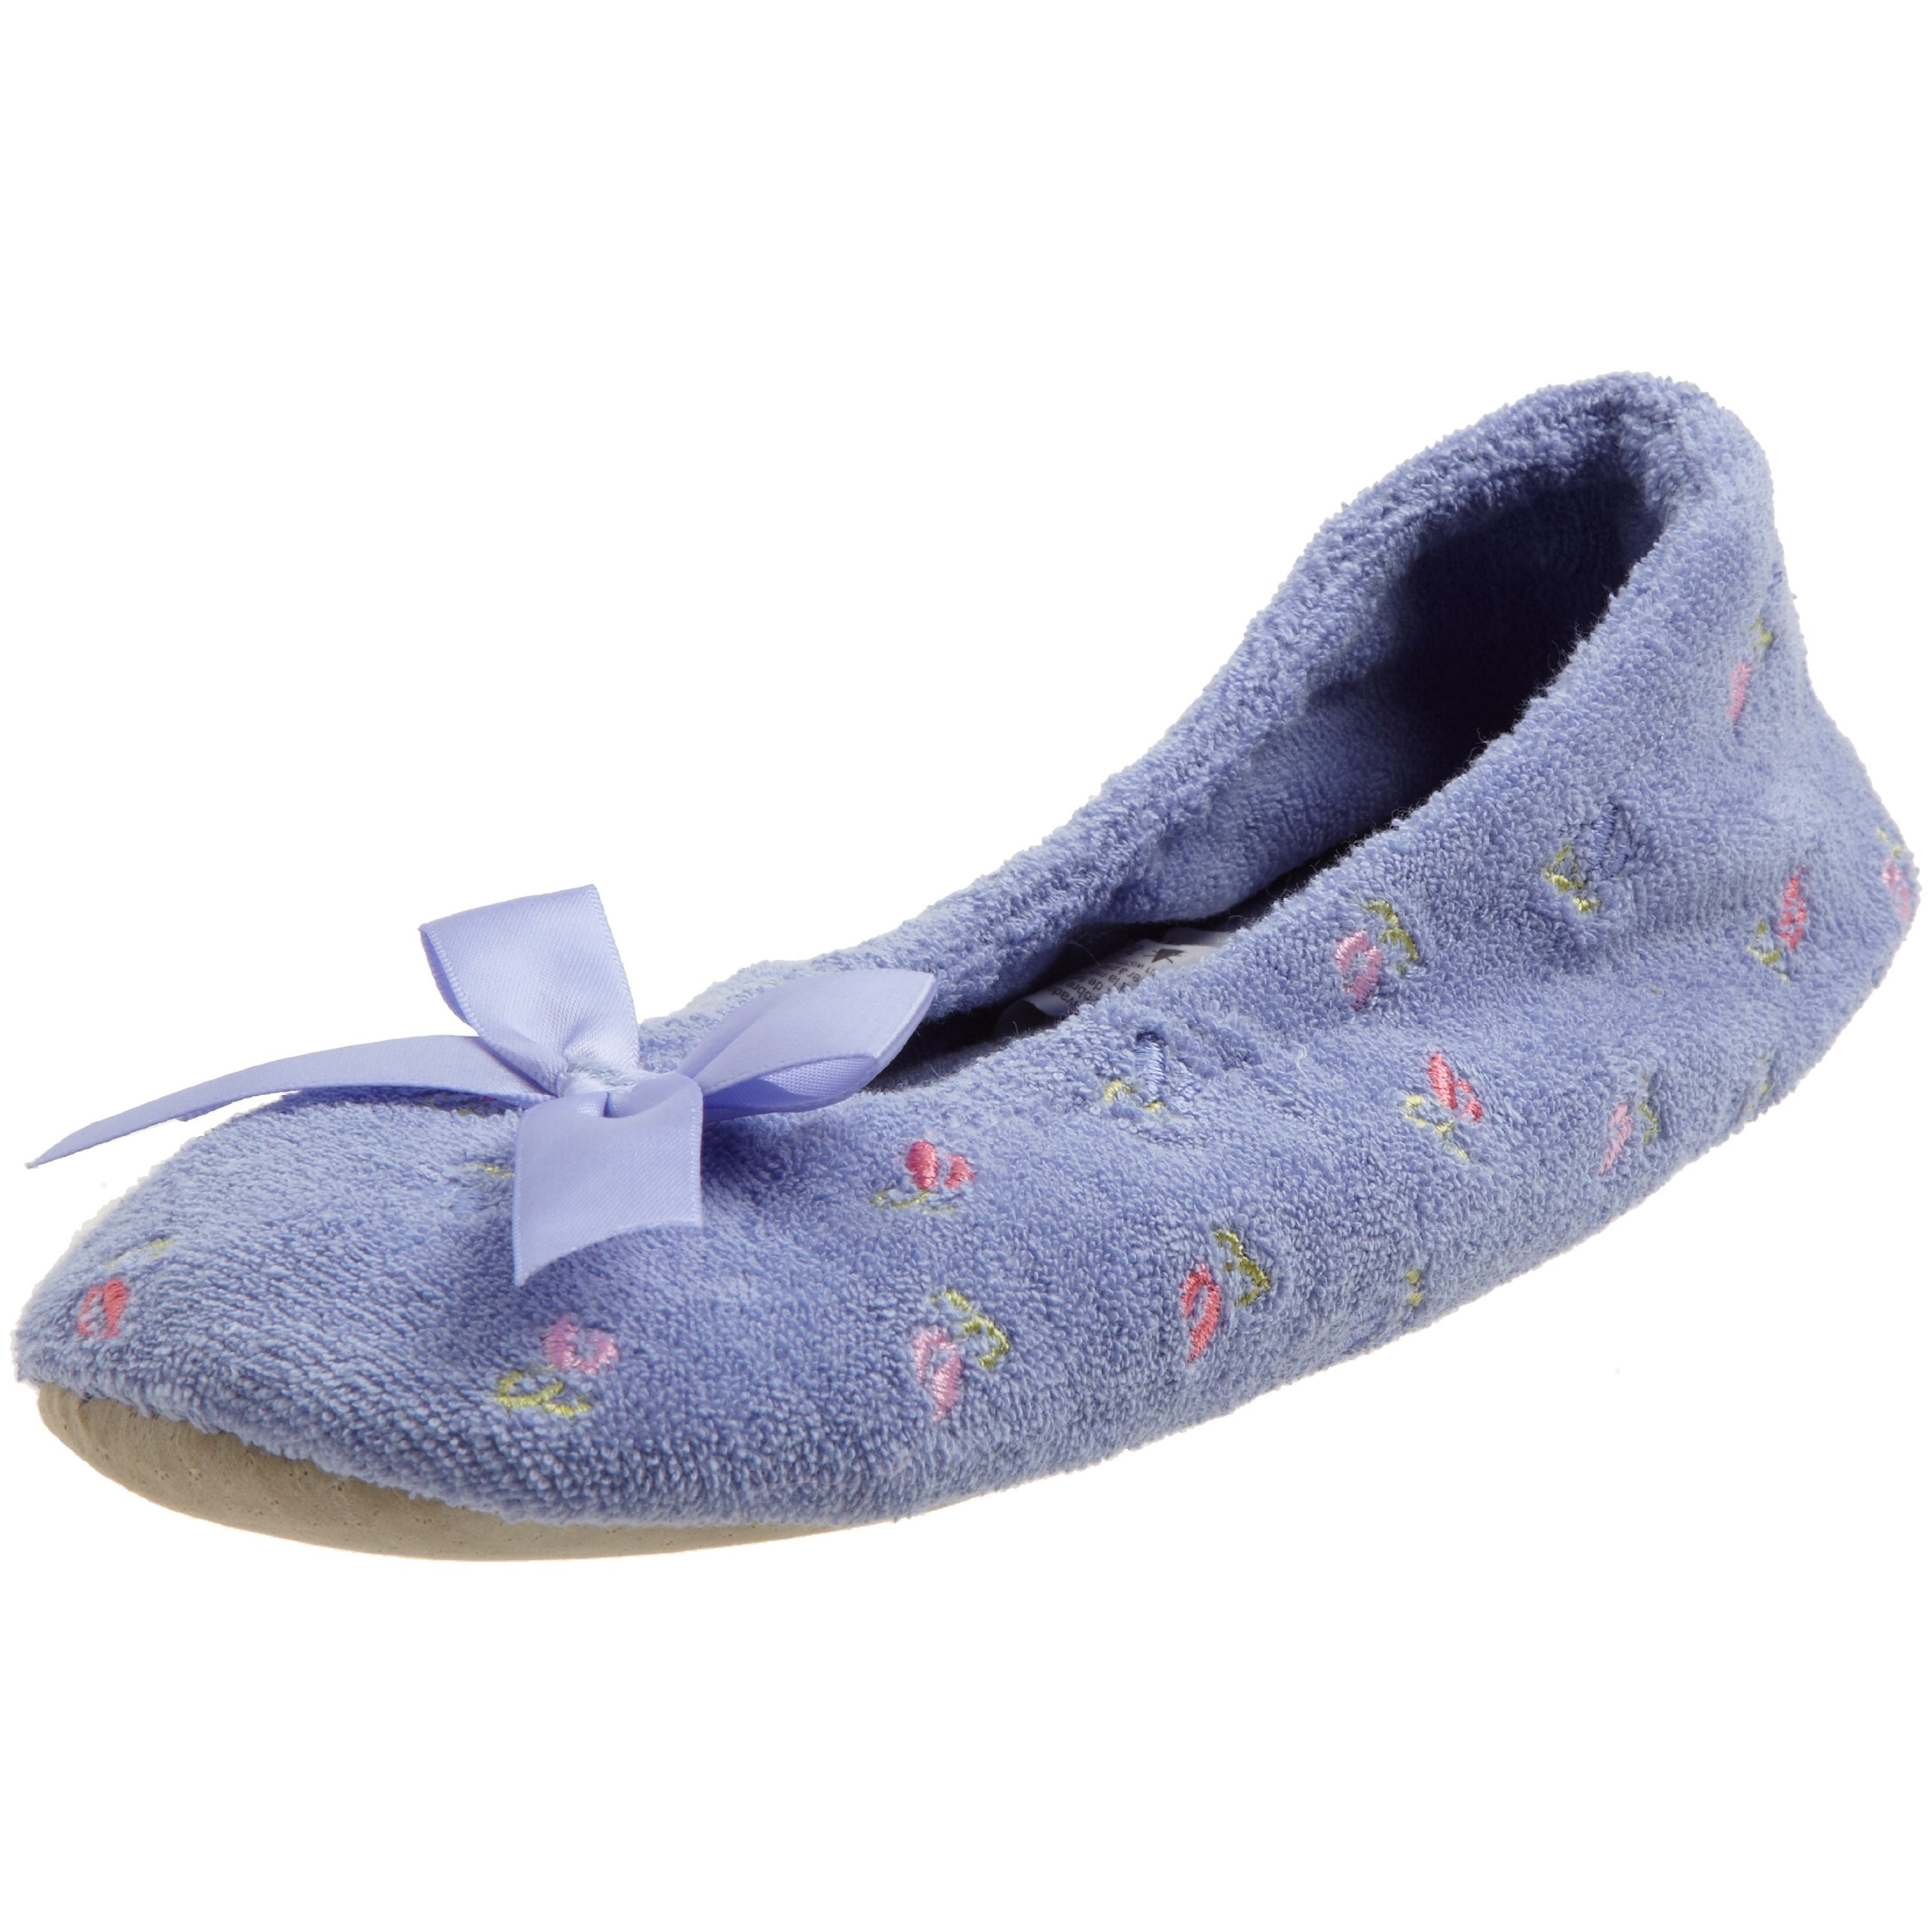 Isotoner Women's Embroidered Terry Ballerina Slipper, Perriwinkle, X-Large